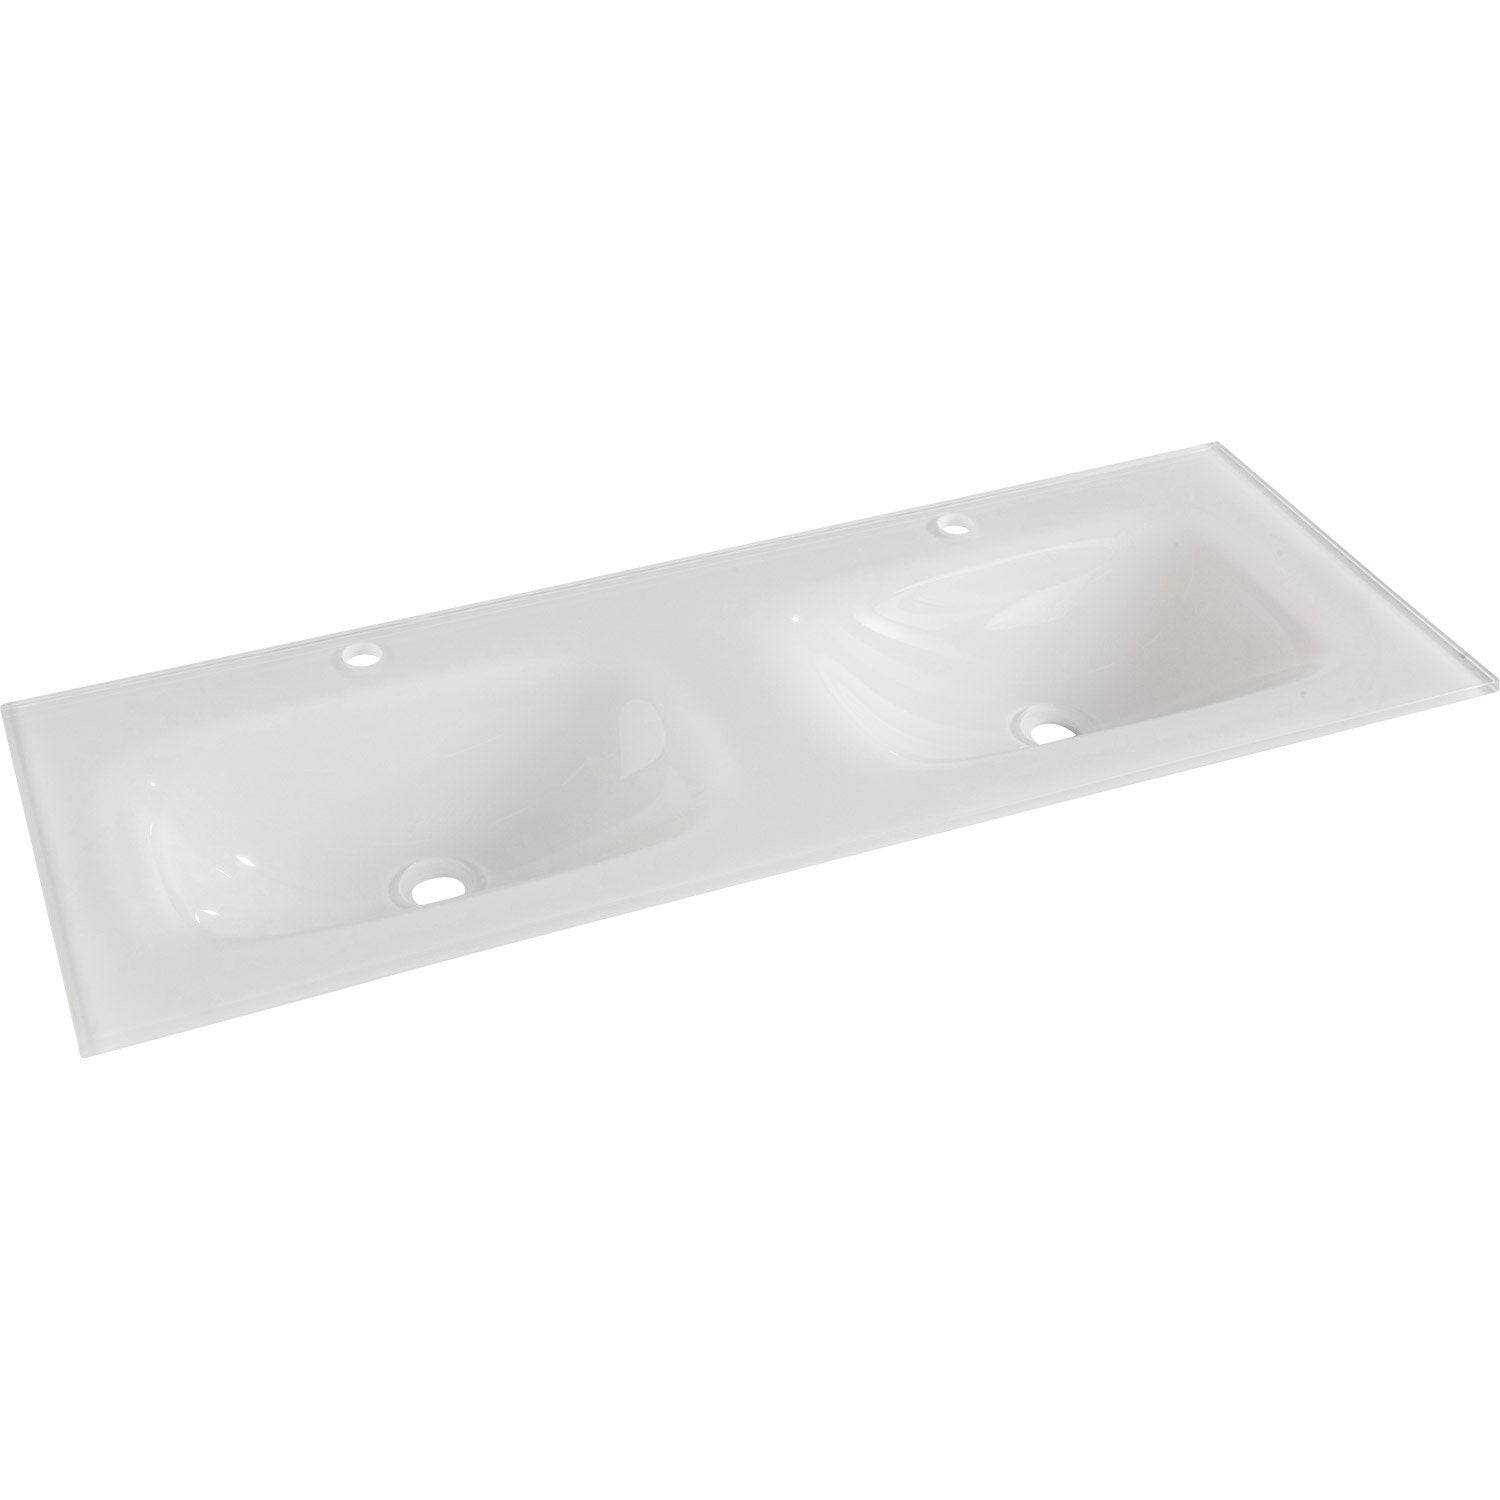 Plan vasque double opale verre tremp 121 cm leroy merlin for Plan double vasque salle de bain verre